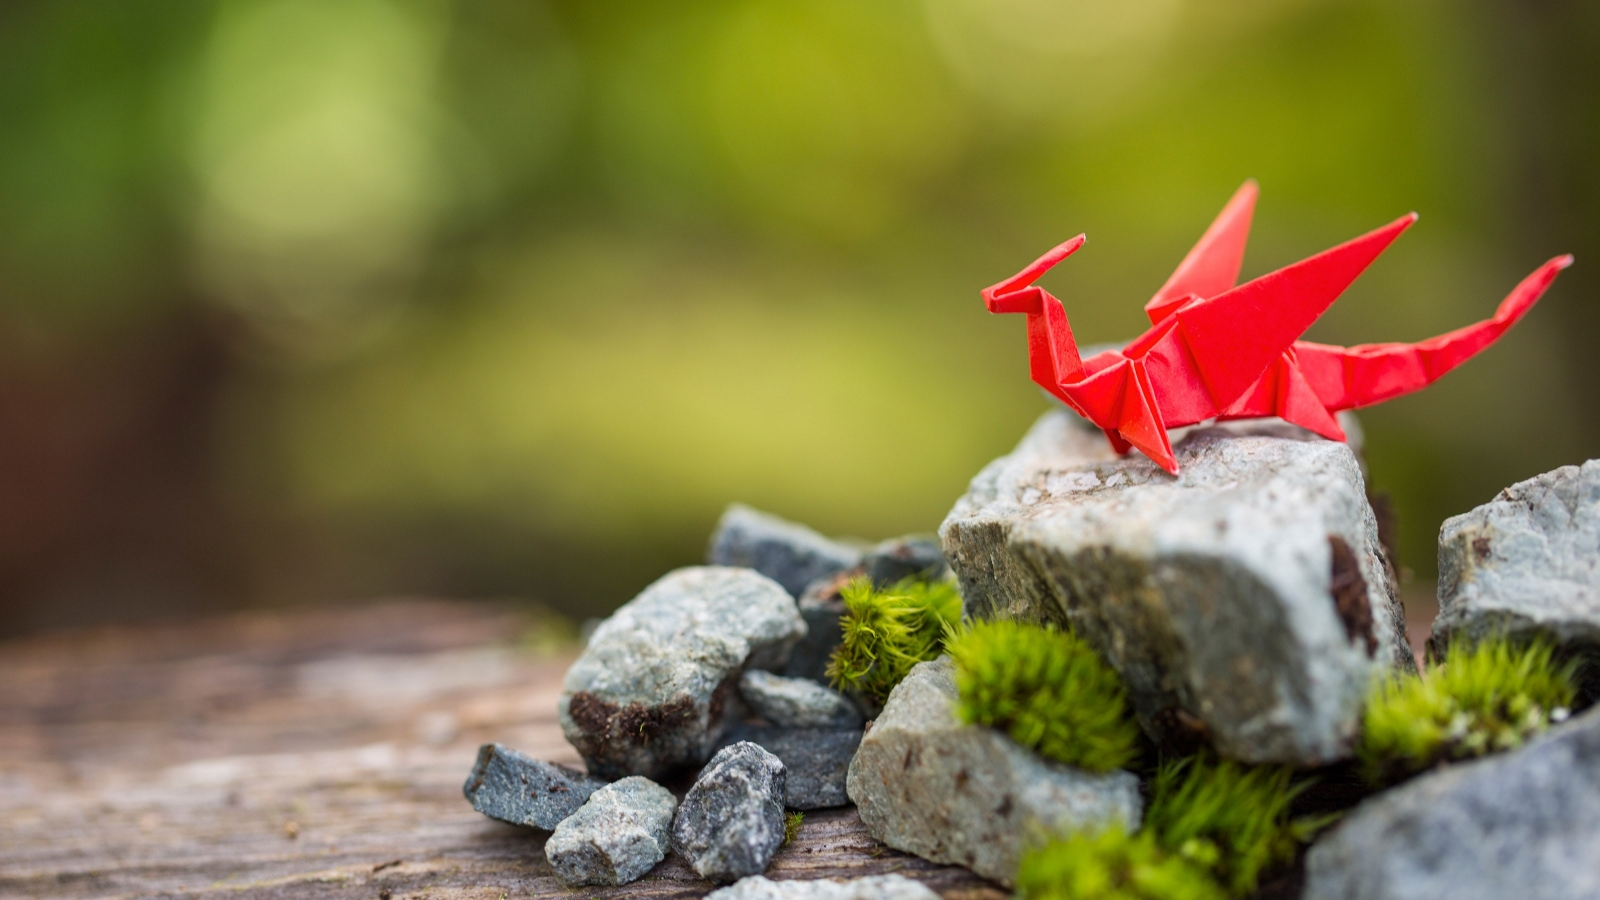 A dragon crafted from red origami paper sitting on a mossy rock